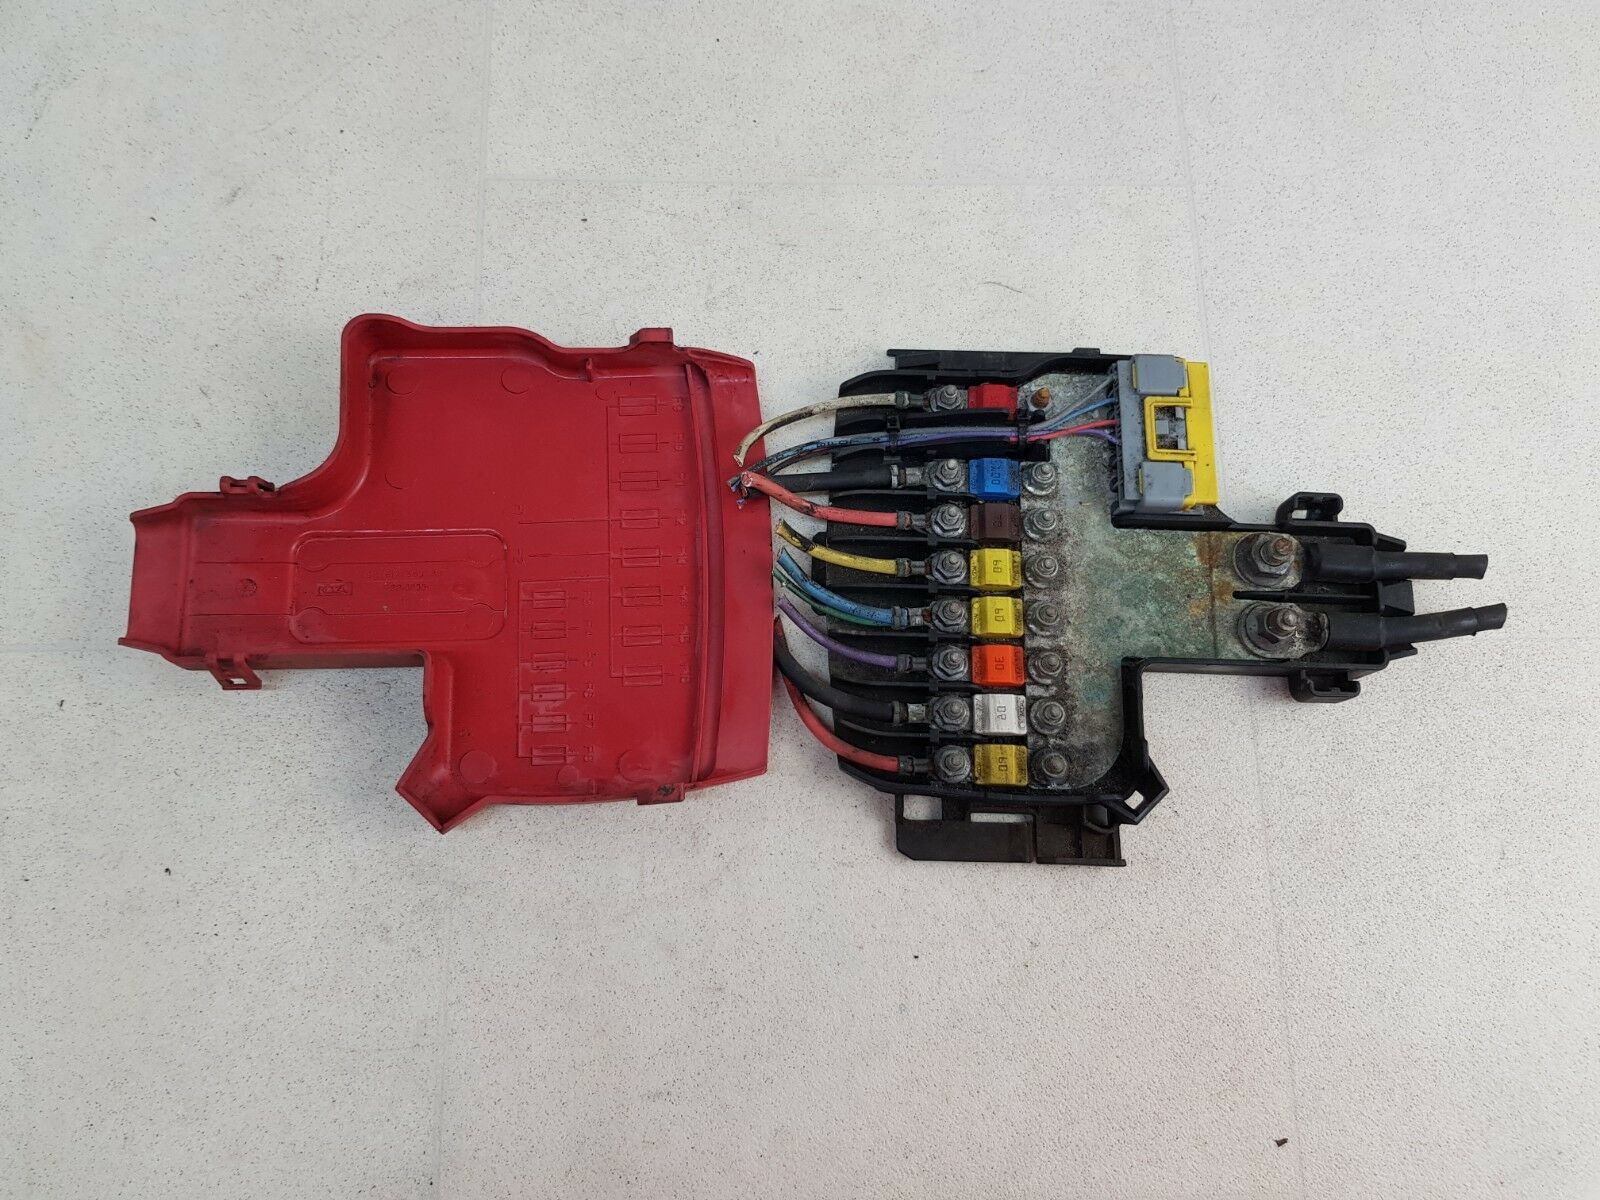 medium resolution of details about citroen c4 picasso mk1 07 13 engine battery fuse box unit with cover 9662914480